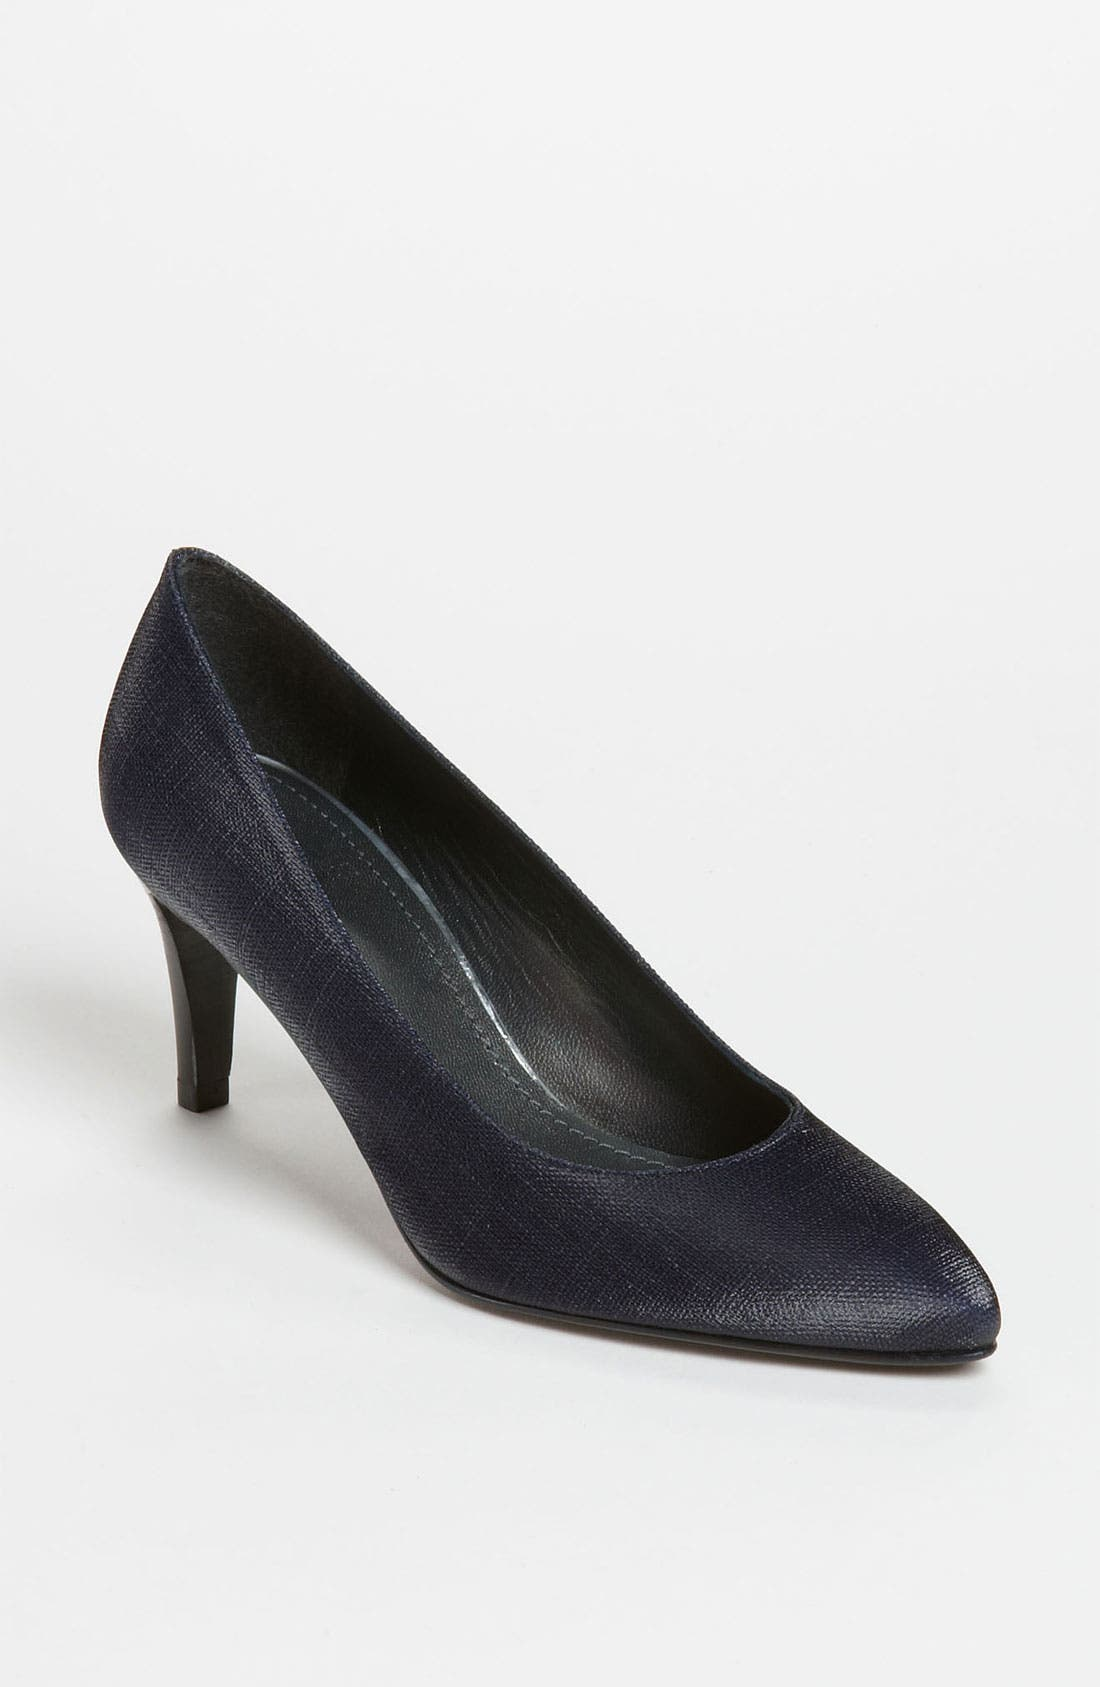 Alternate Image 1 Selected - Stuart Weitzman 'Mimi' Pump